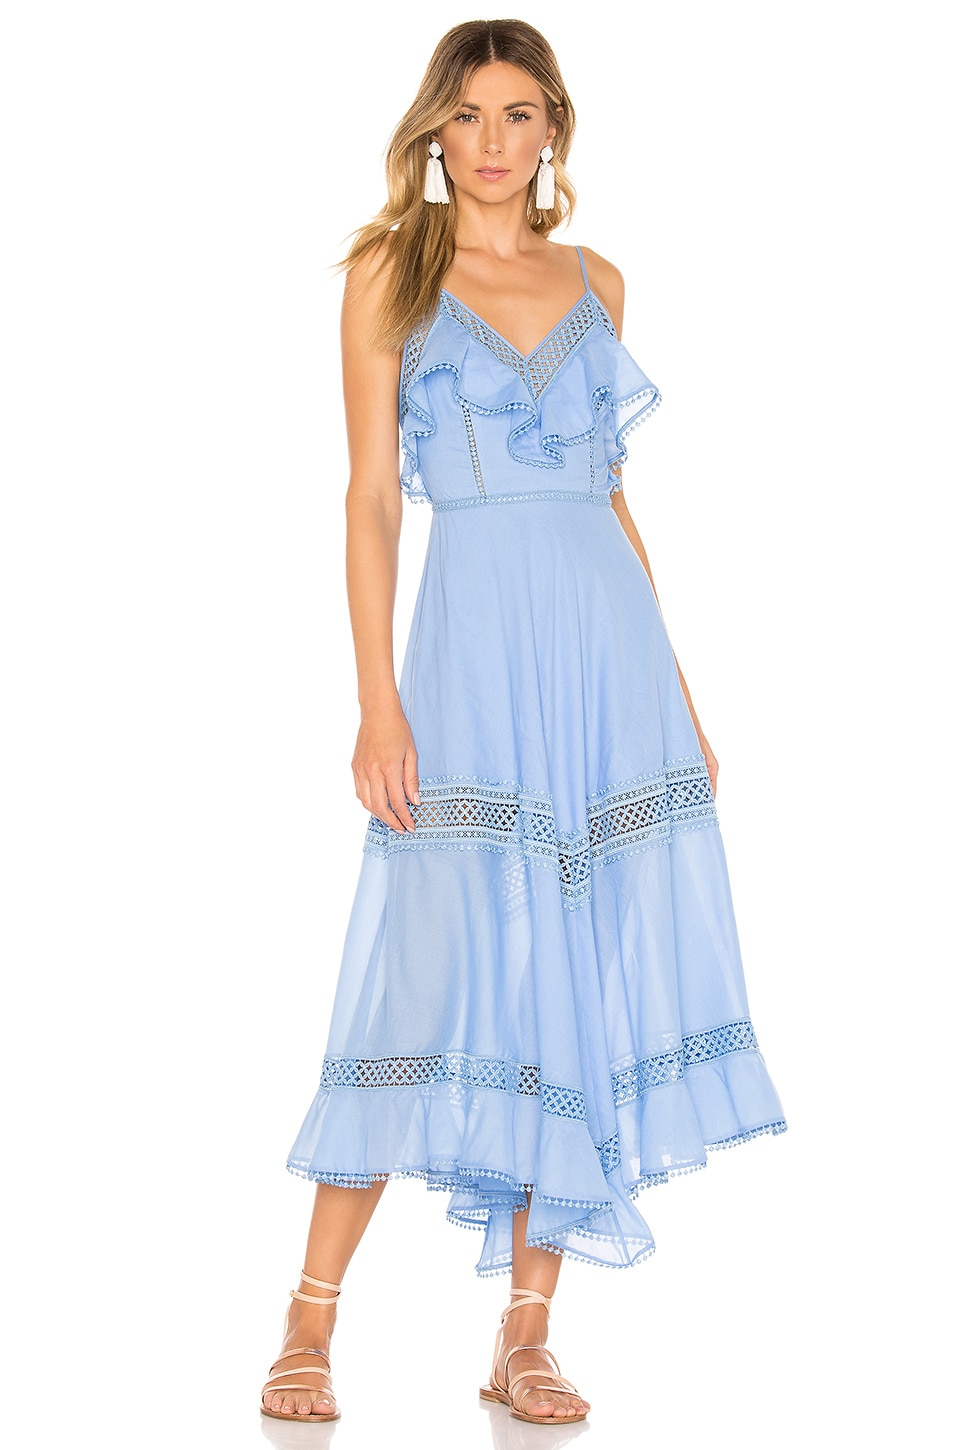 Charo Ruiz Ibiza Sabine Dress in Blue